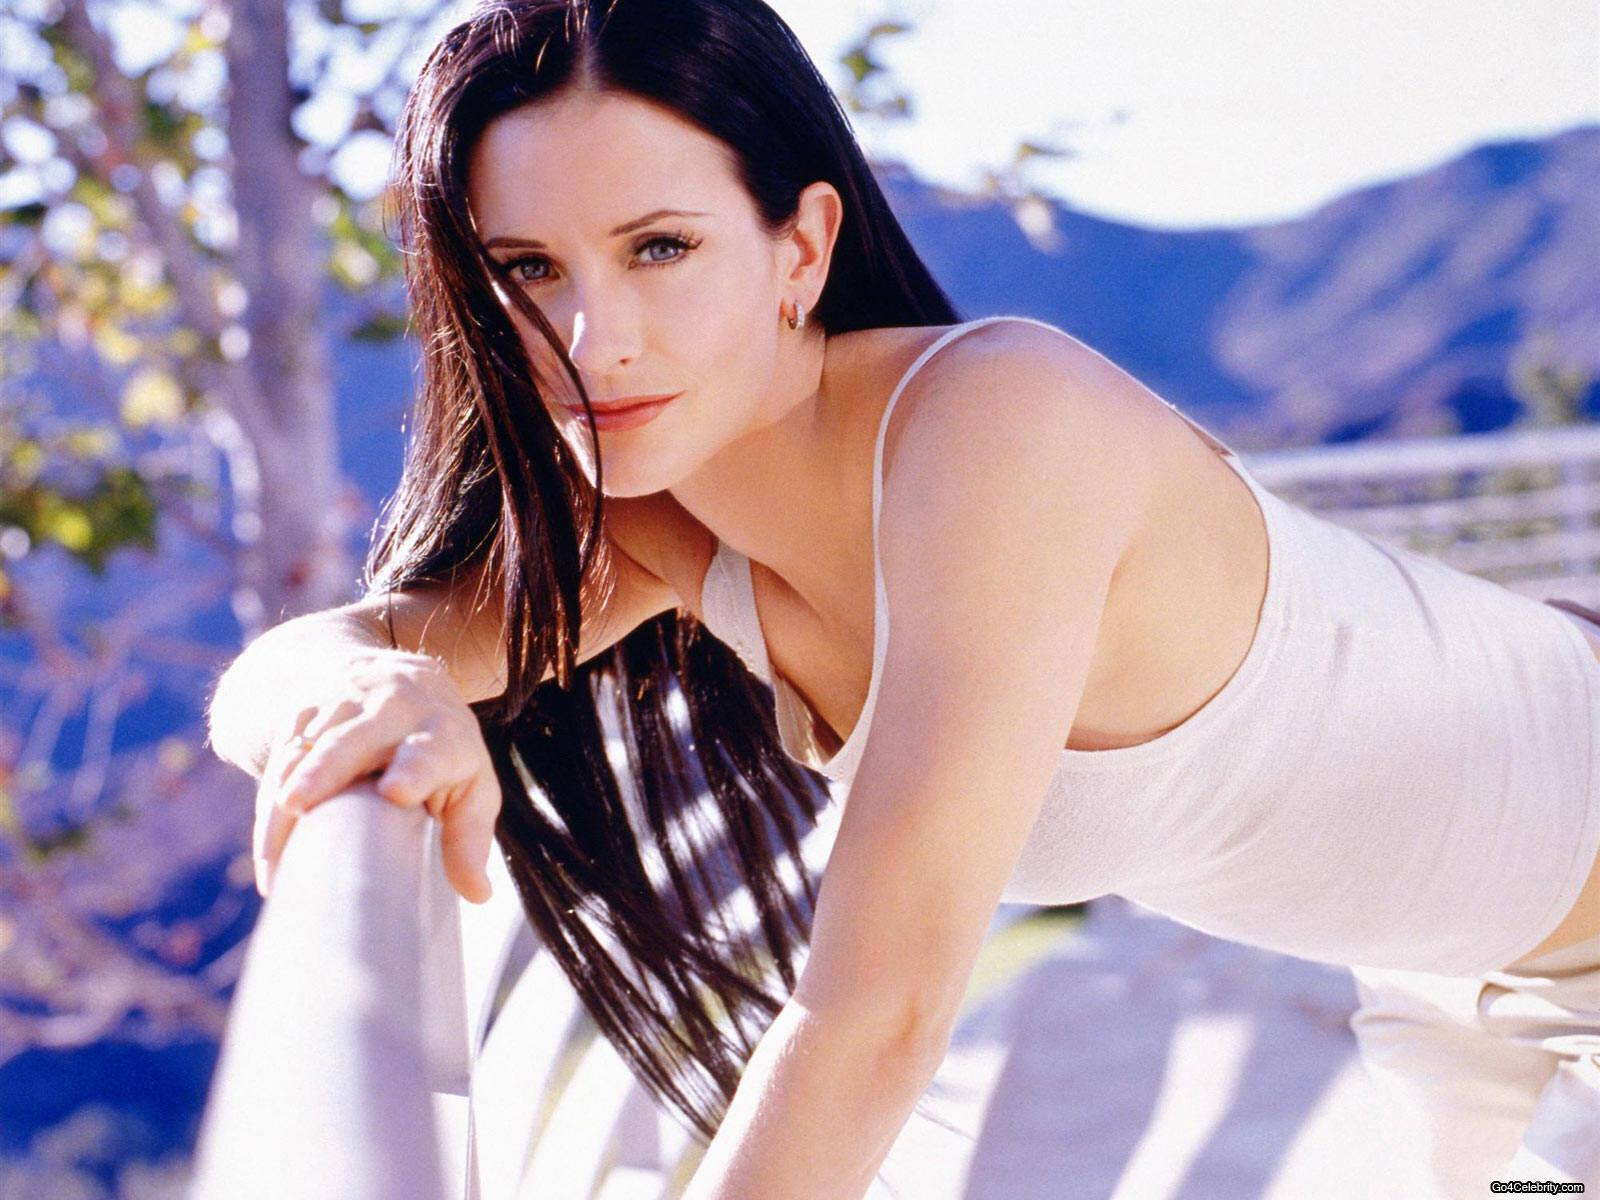 Courteney CoxWallpaper - Images Gallery